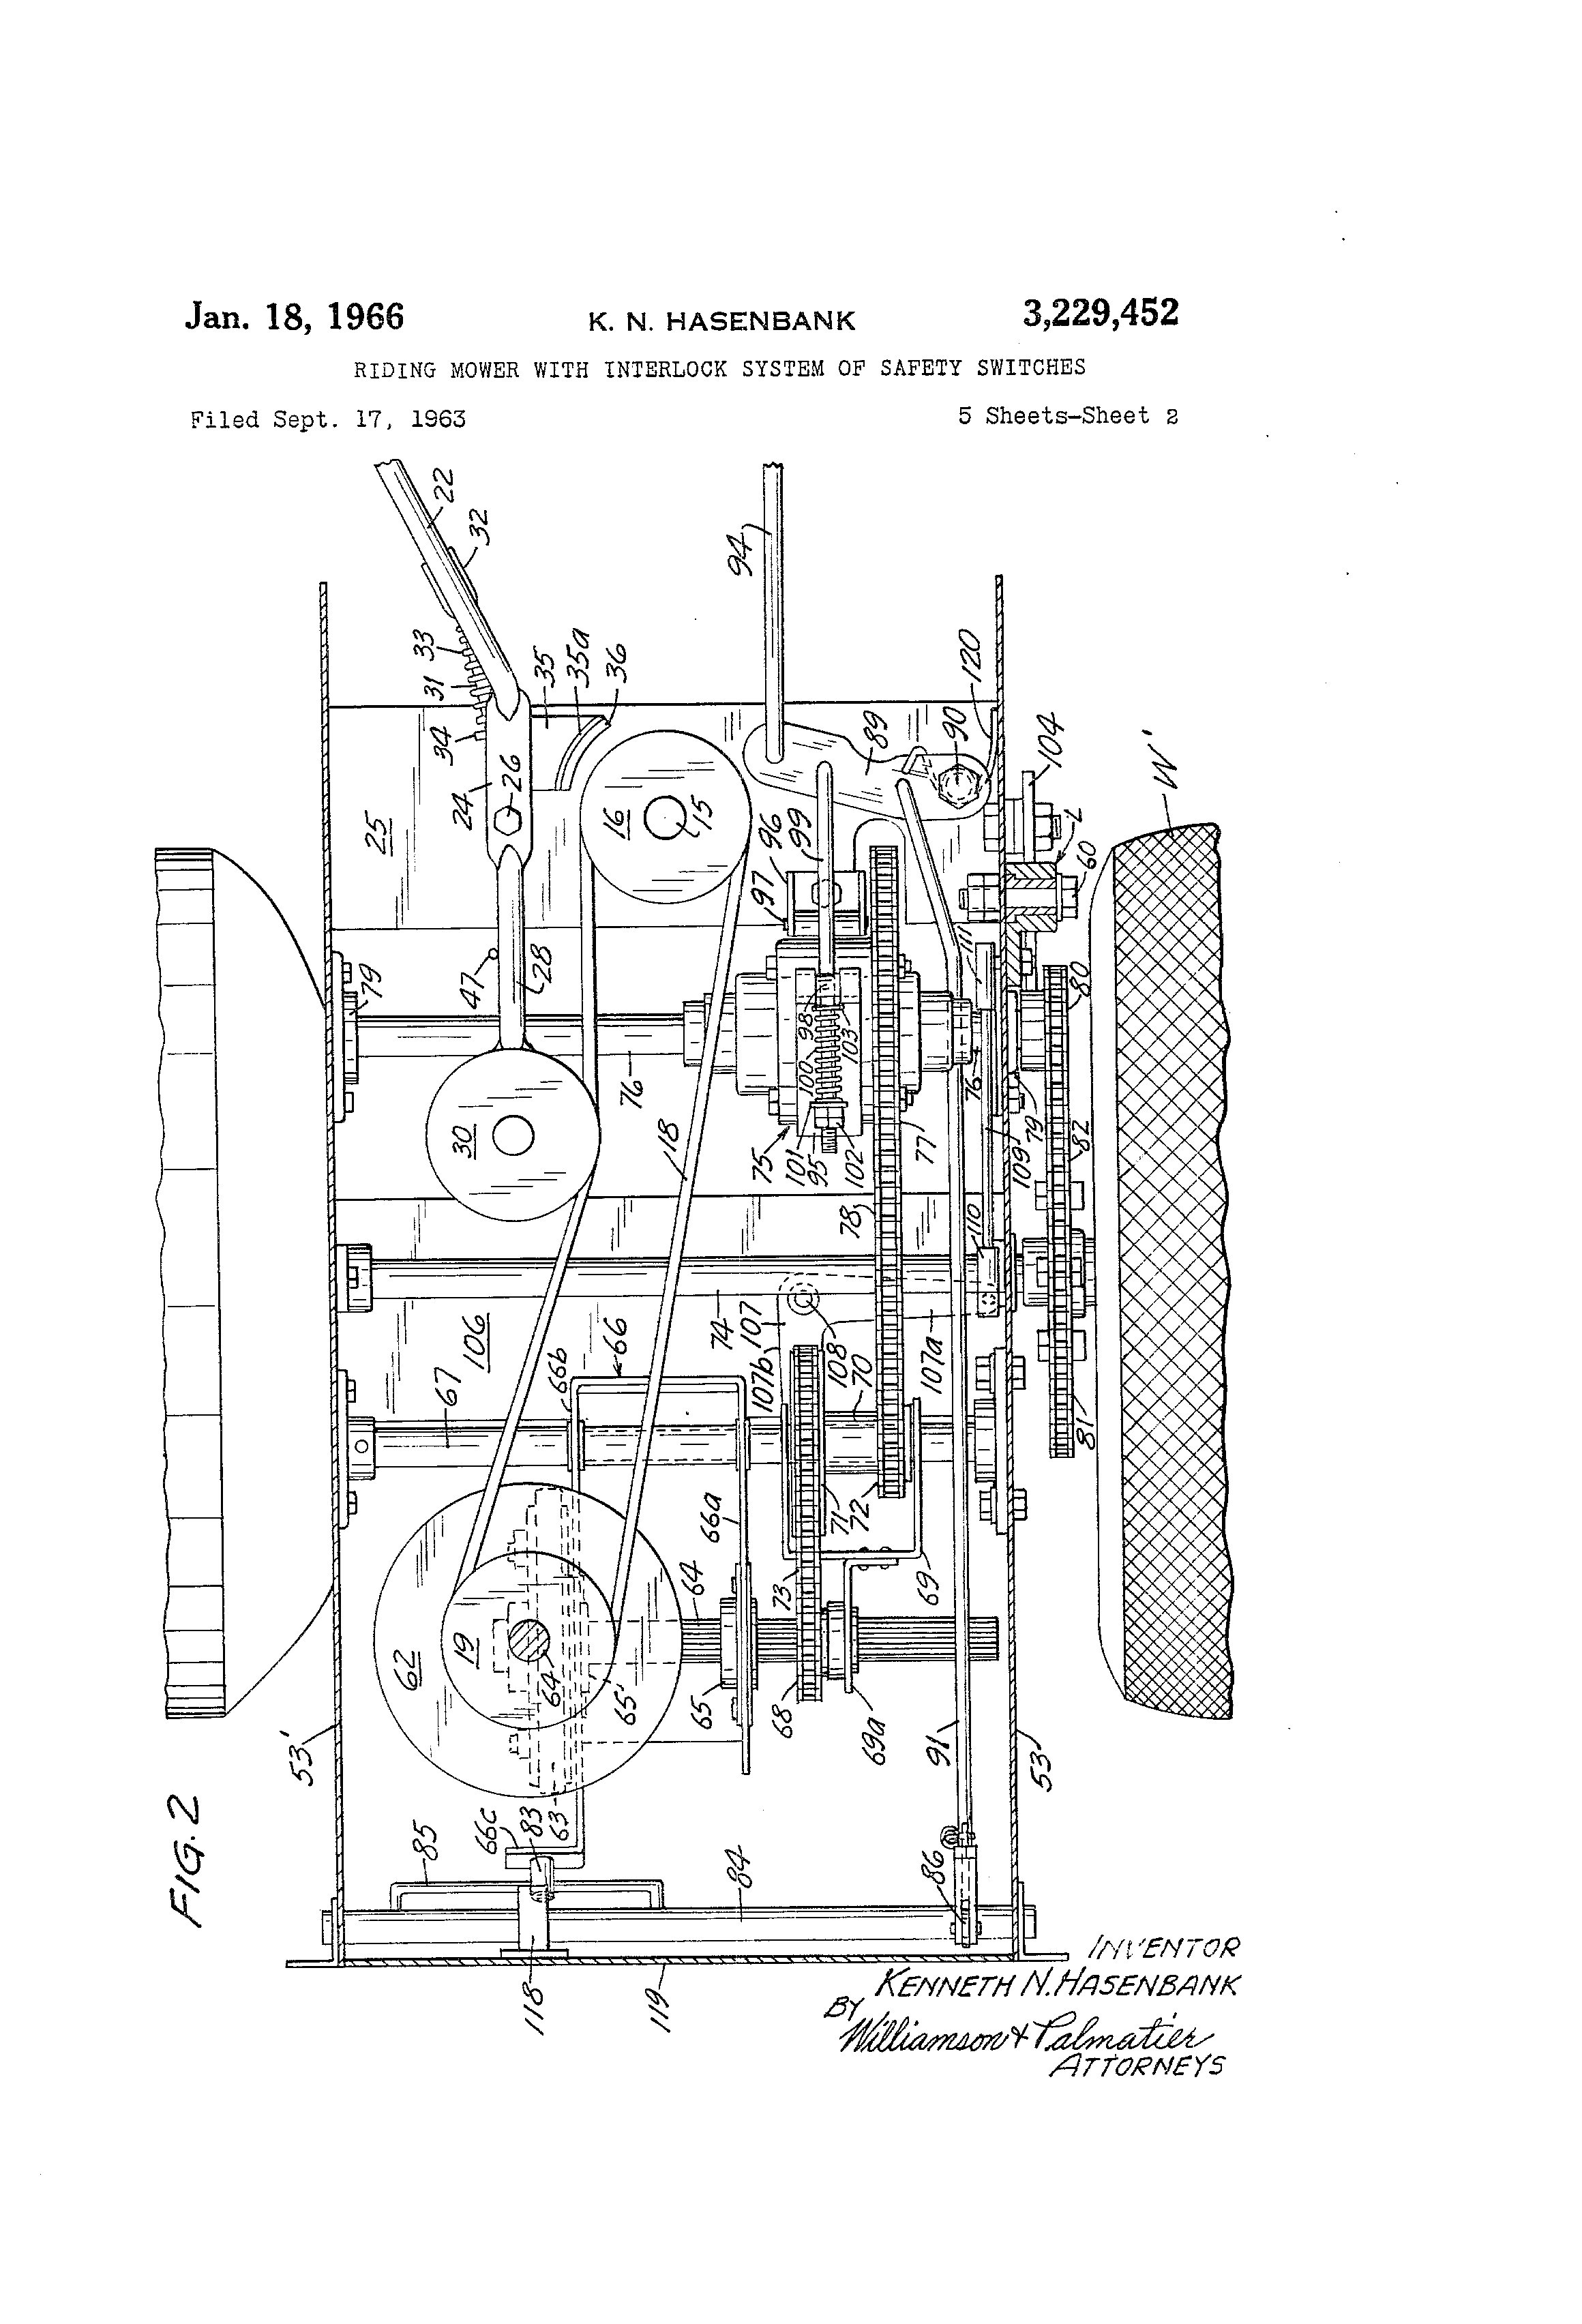 patent us3229452 - riding mower with interlock system of safety switches